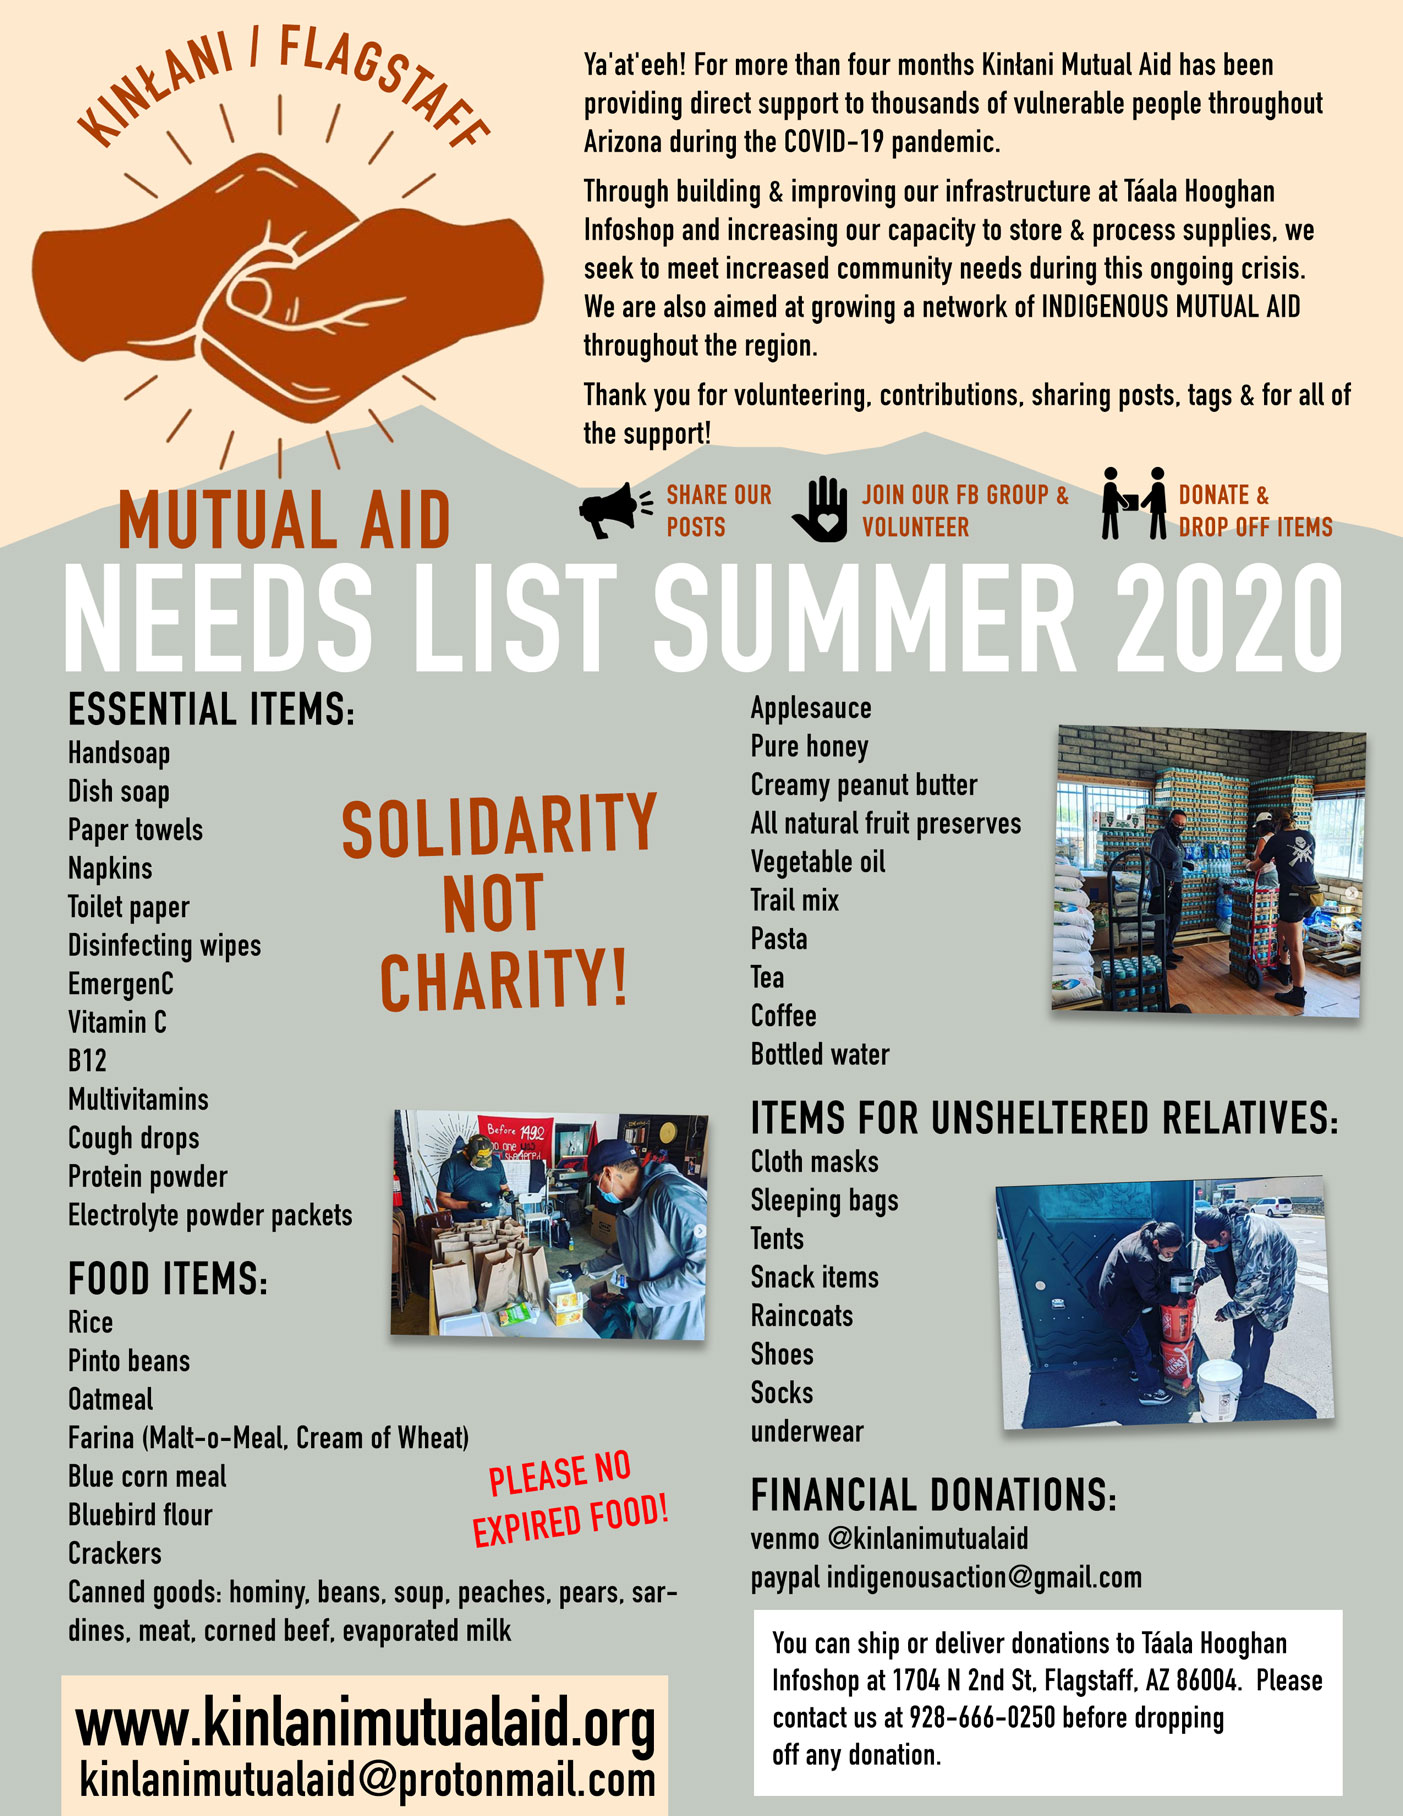 KMA-needs-list-summer-2020-updated